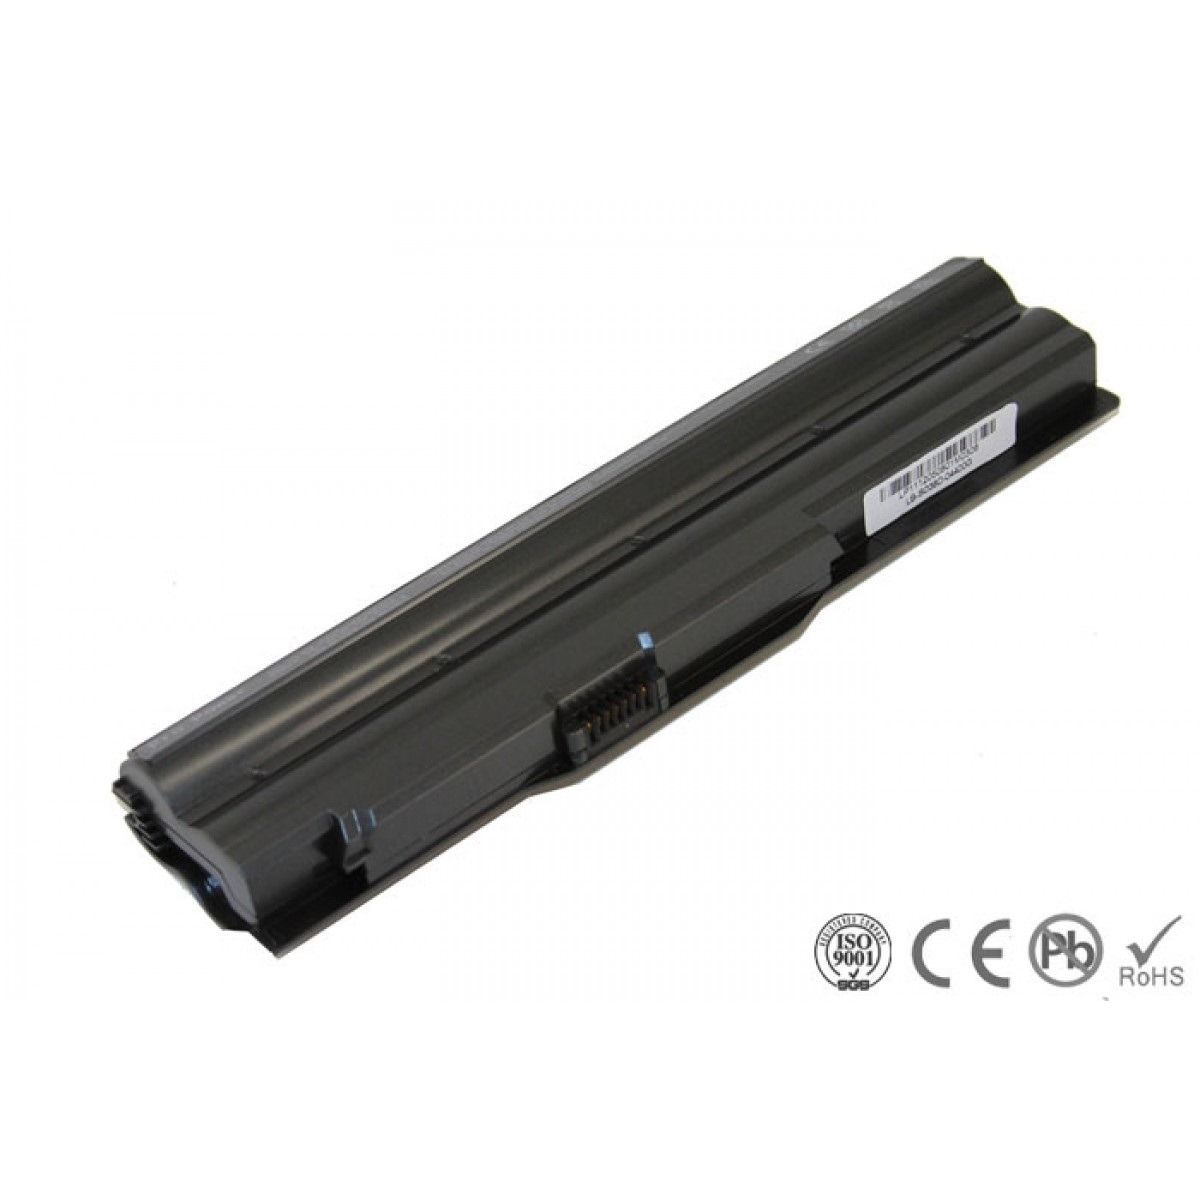 Replacement Sony VGP-BPL20 Battery